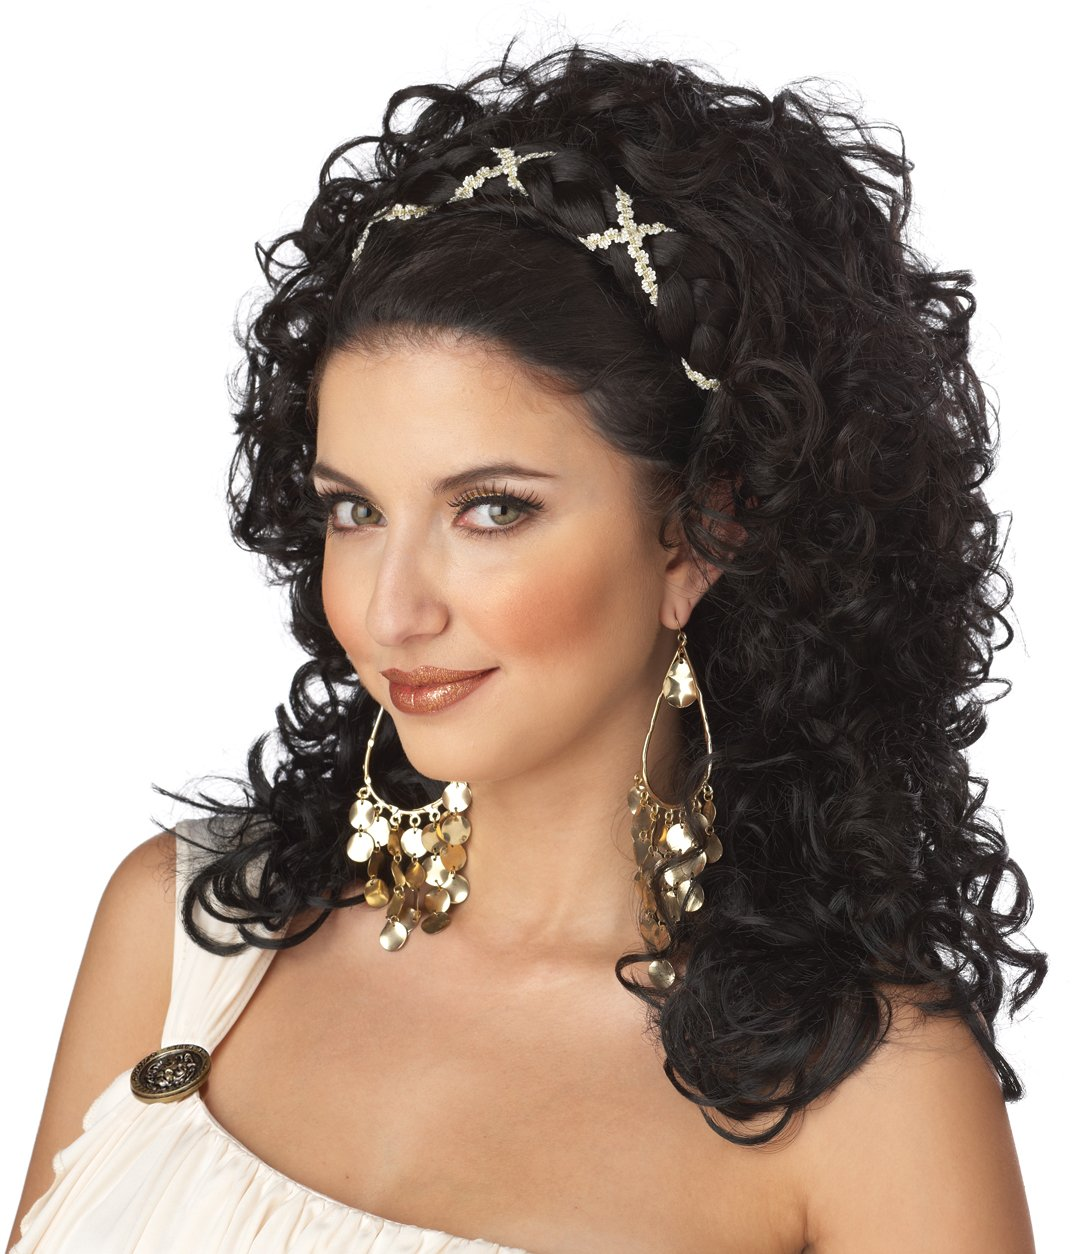 Roman Grecian Goddess Adult Costume Wig #70015_Black